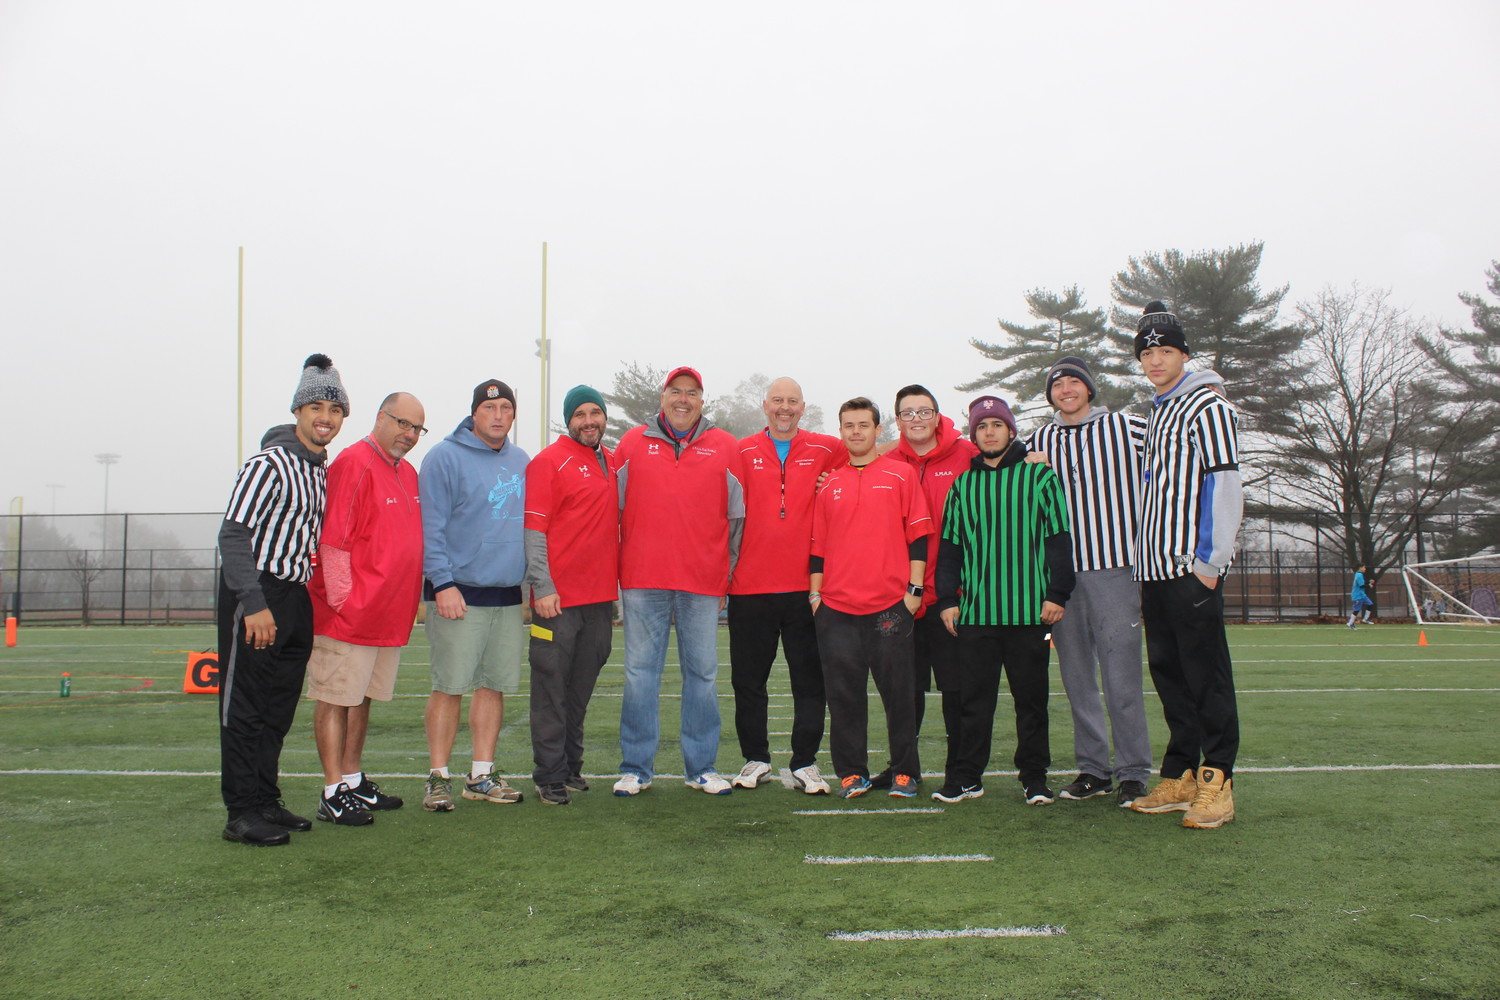 All referees and coaches are former players, many of who graduated from East Meadow or W.T. Clarke high schools and wanted to remain involved in the league, said its founder Dave Schwarz.